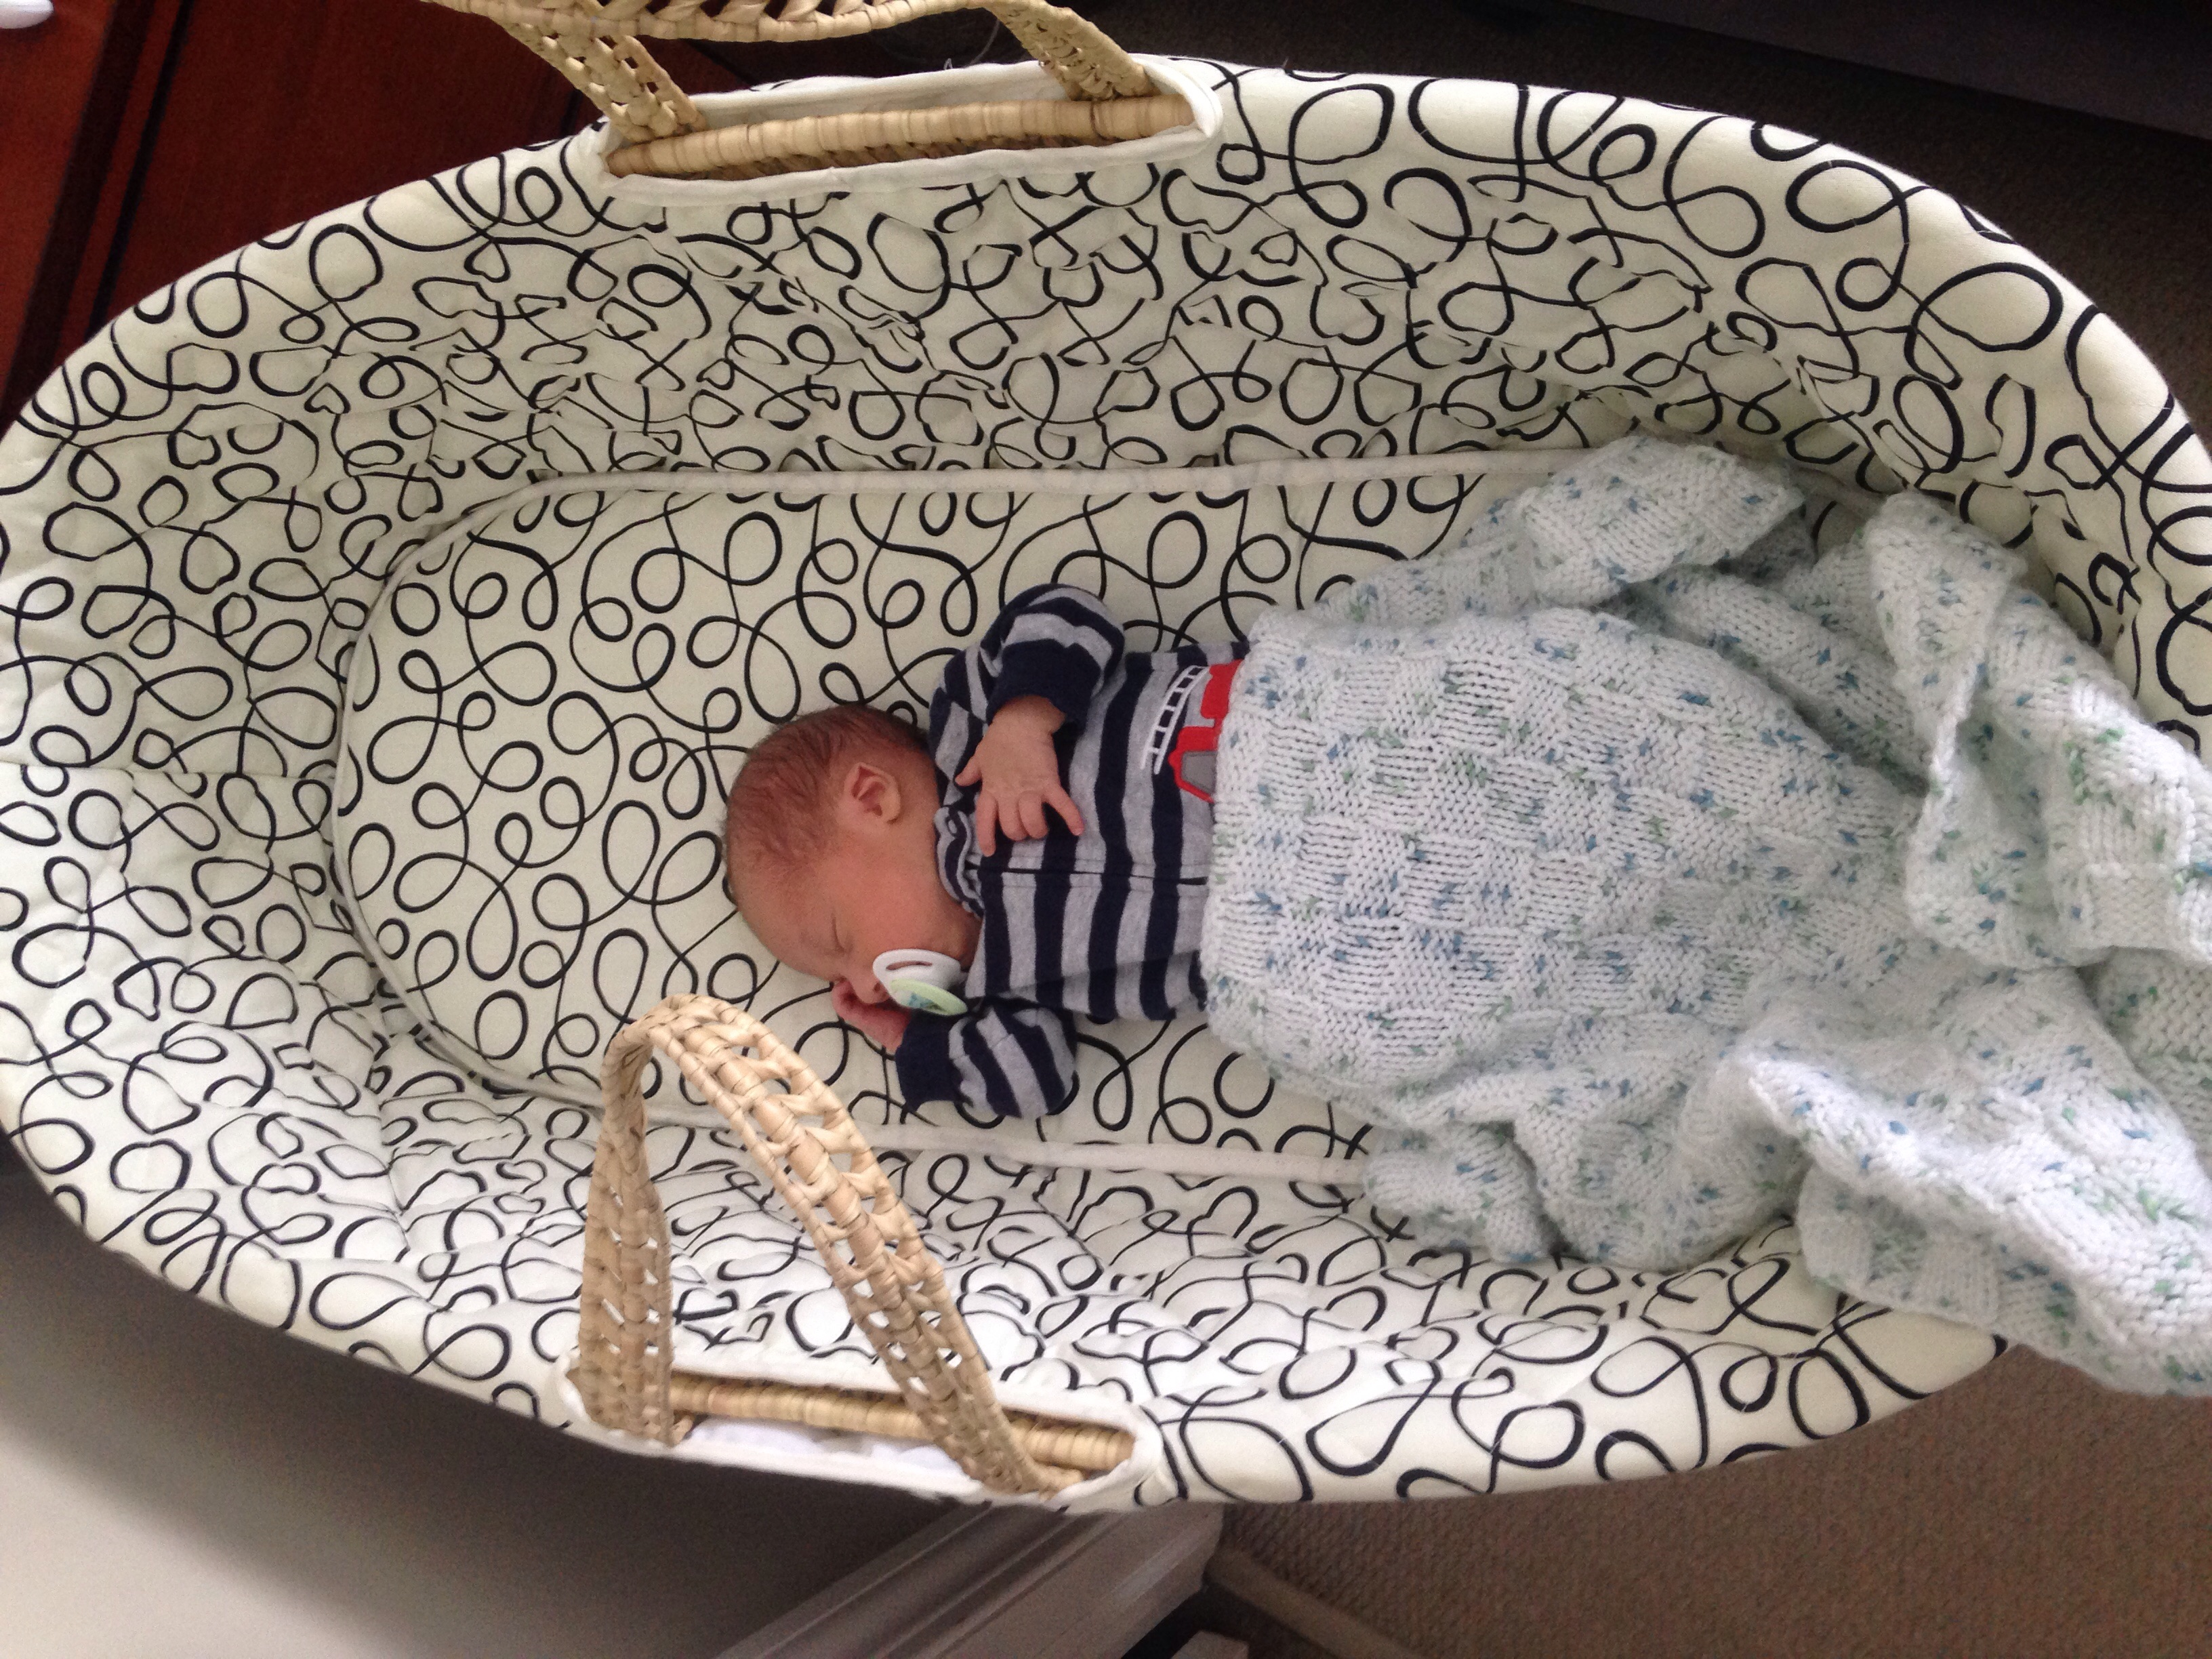 Eye Does Anyone Else Have One Baby Year Forums What Baby Moses Basket Sheets Baby Moses Basket Bible Story Se Ir I Bought It From Babiesr Us So I Am Hoping Moses Basket baby Baby Moses Basket